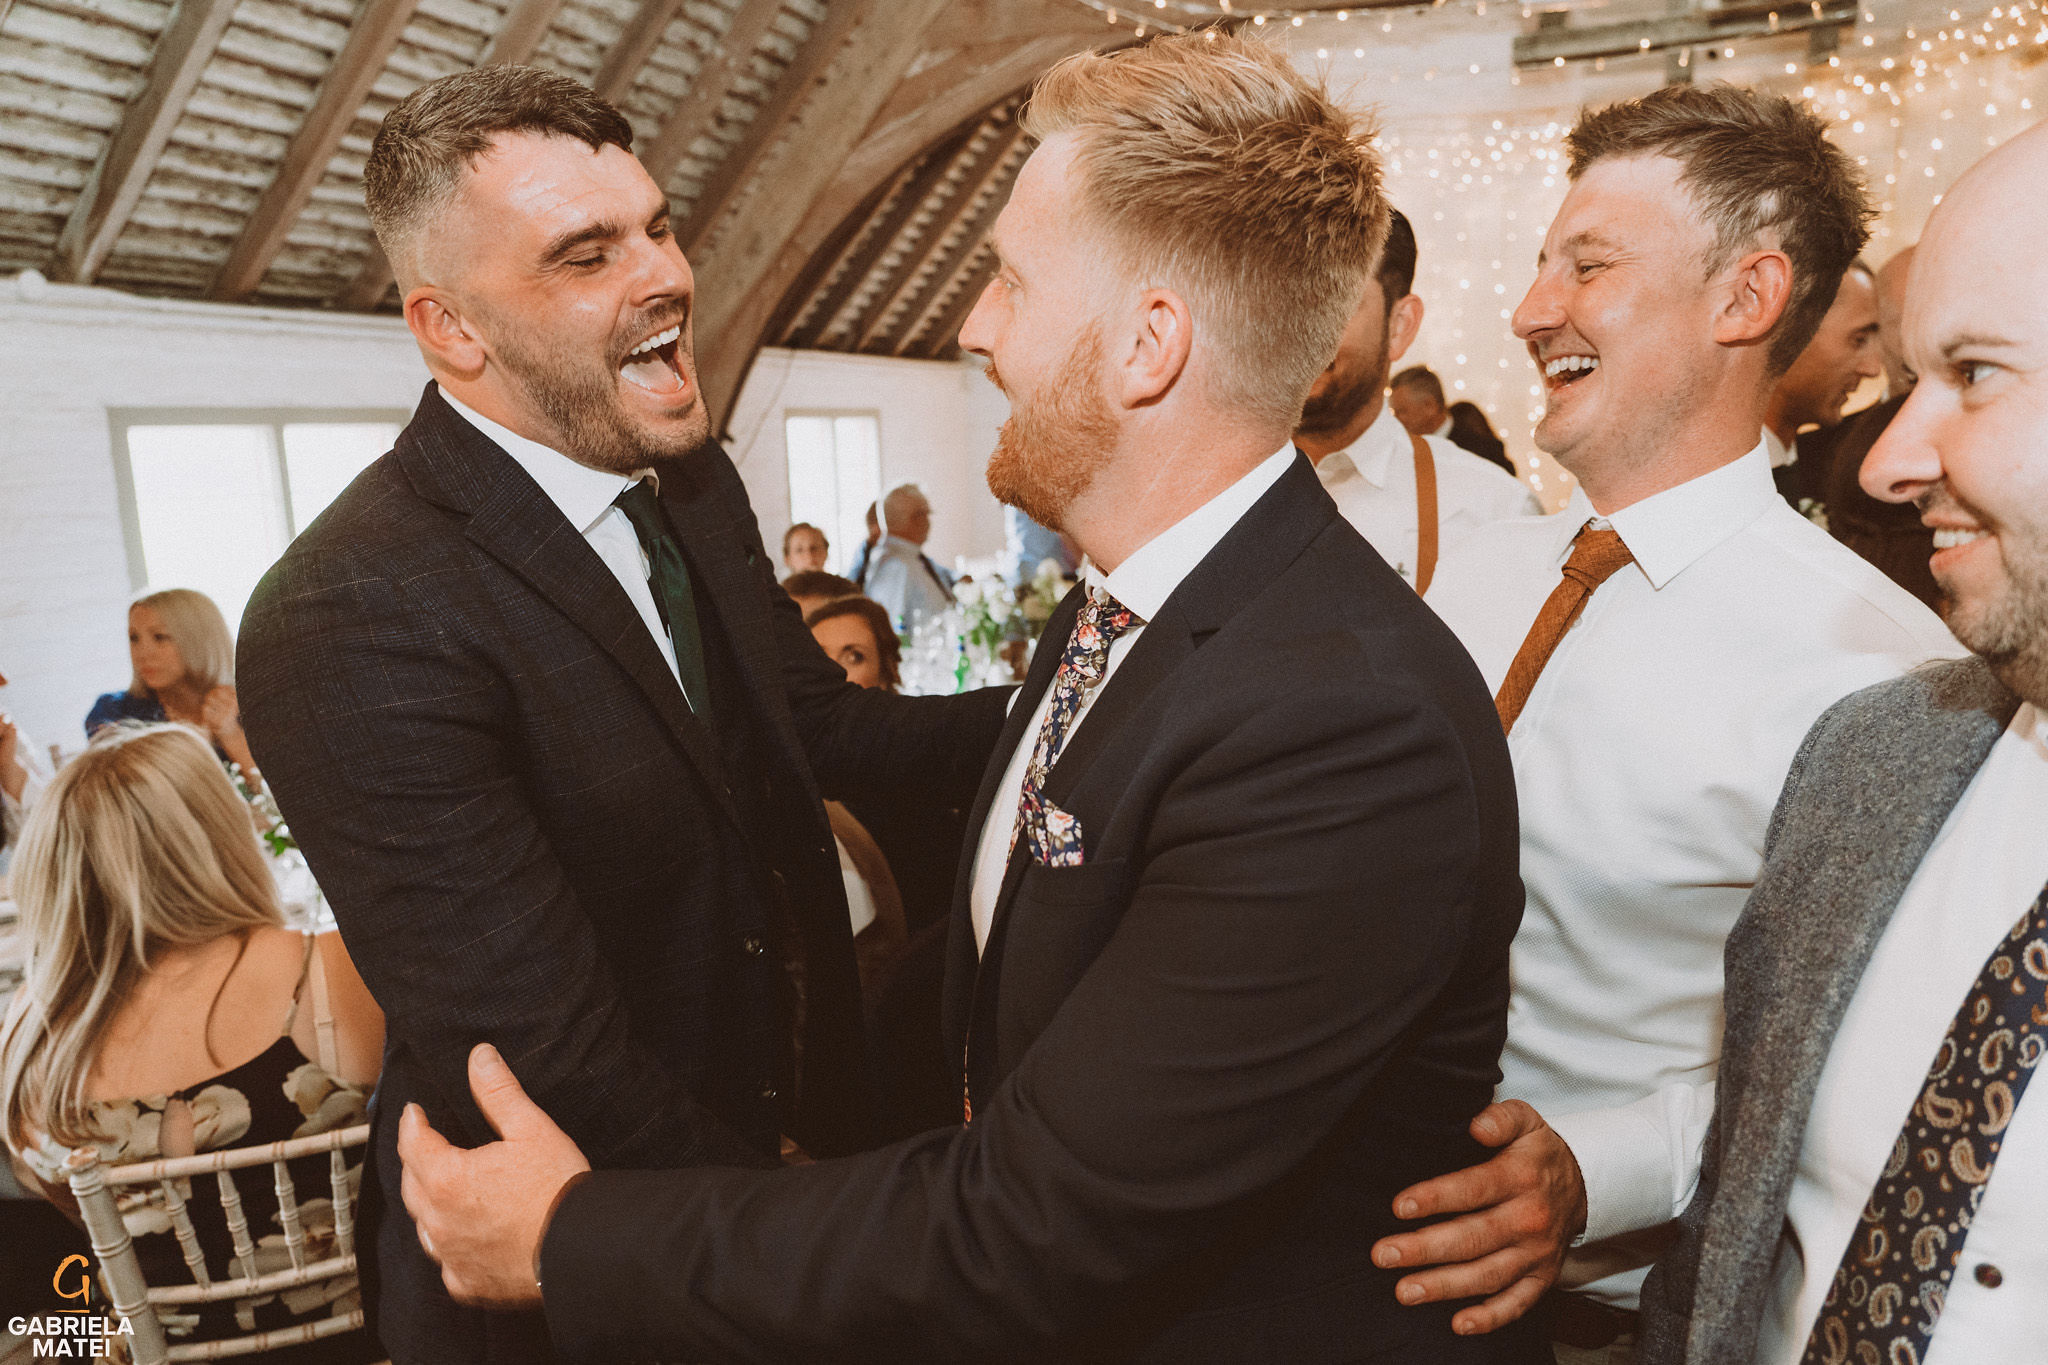 Wedding guests laughing together with the groom at South Stoke Barn wedding venue in Arundel by gabriela matei sussex photographer